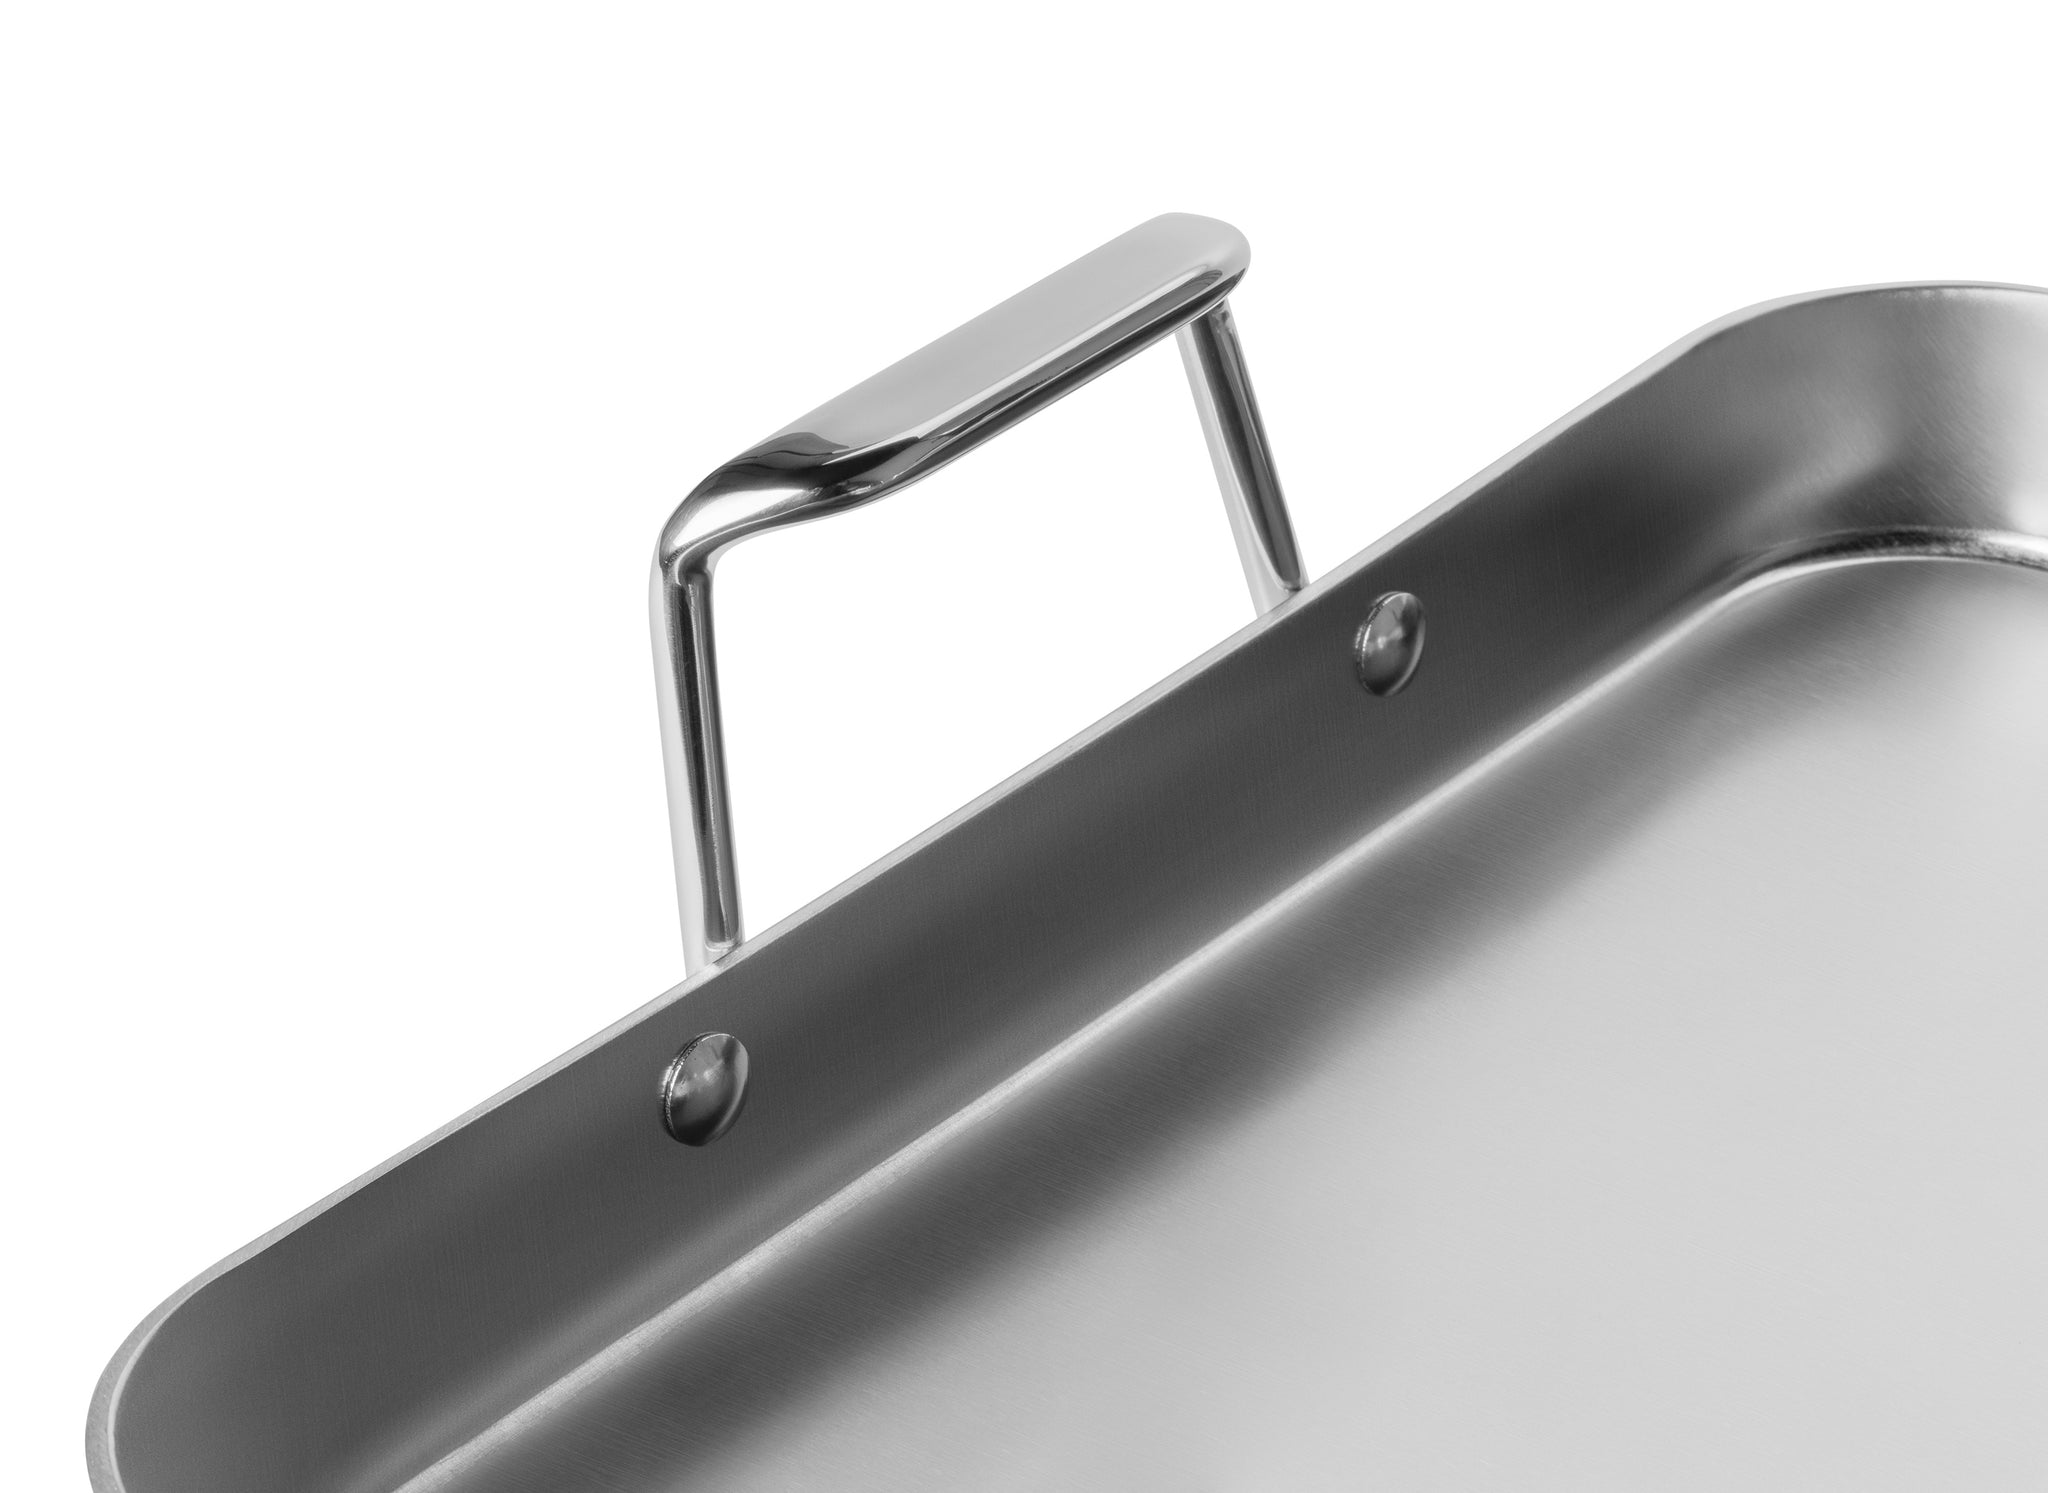 The Misen Roasting Pan has a thick, flat 3.0mm base that prevents warping.